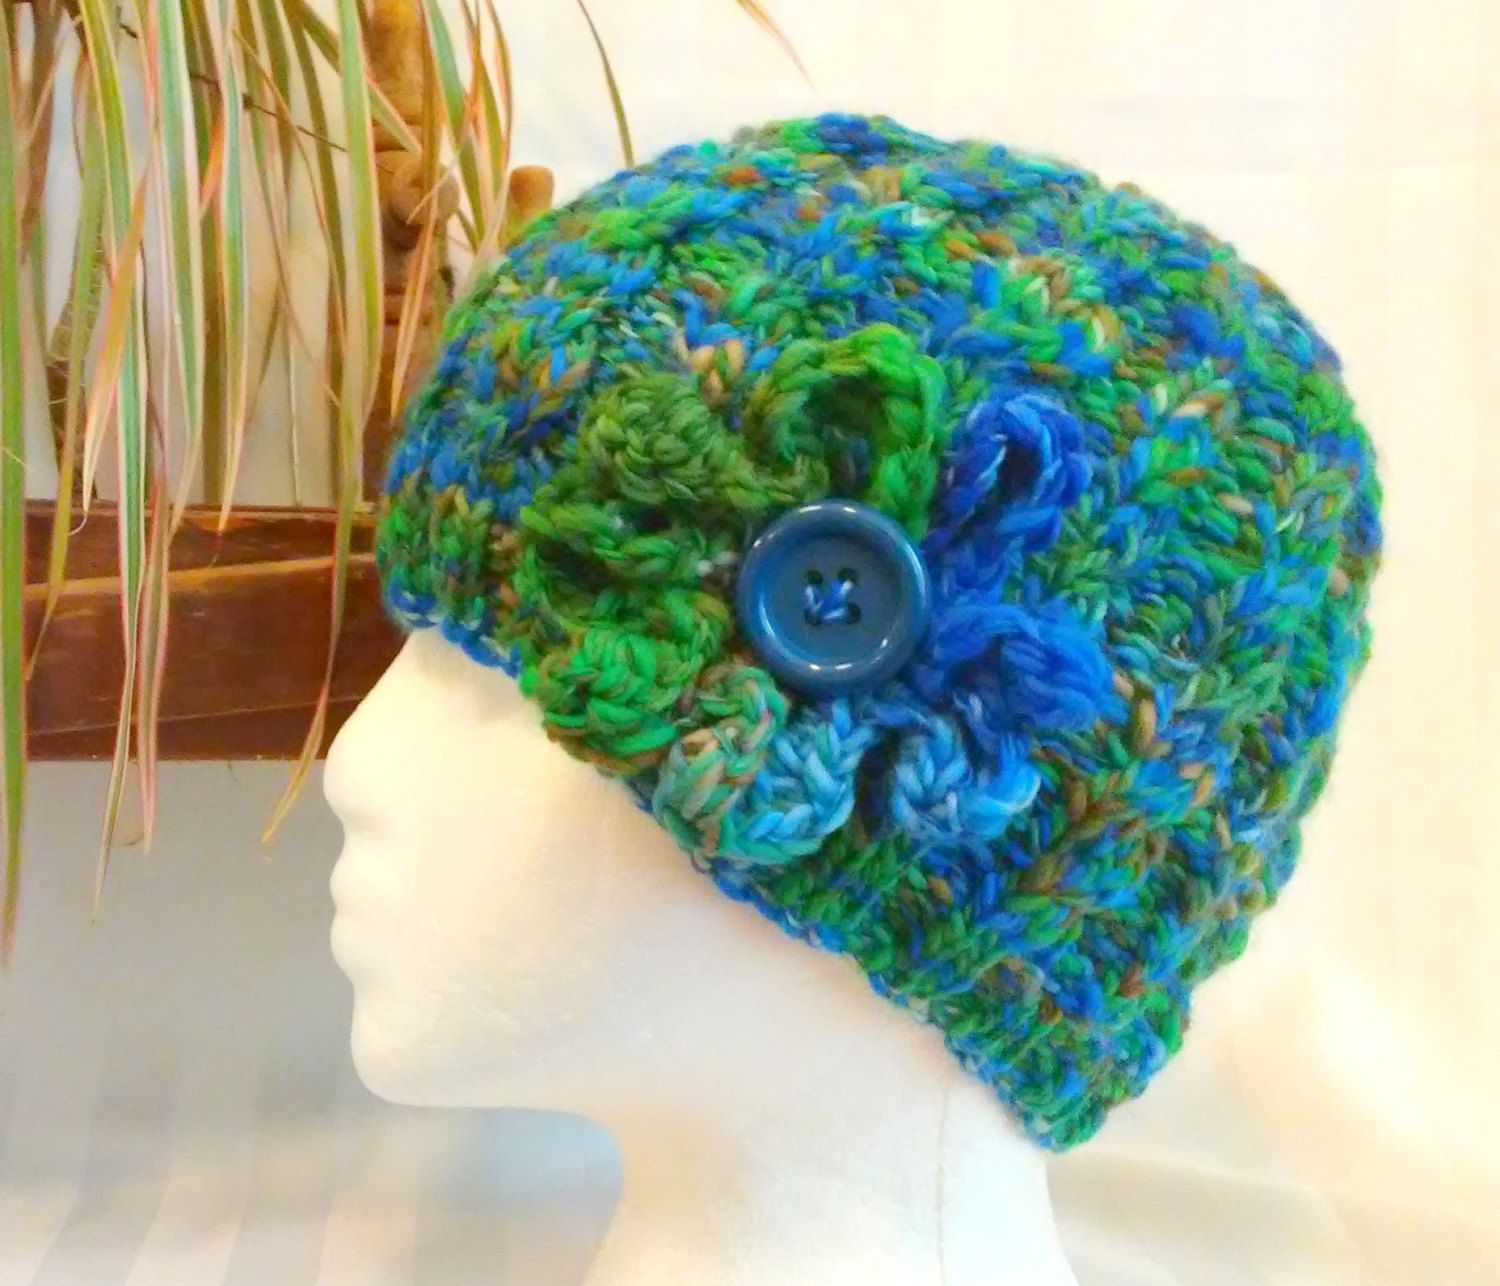 READY TO SHIP. Winter Knit Hat. Handspun Cable Beanie. Blue. Green. Medium Brown. Crocheted Flower. Button. Beanies for Her. Gifts for Her. by JoyfulHandKnits on Etsy